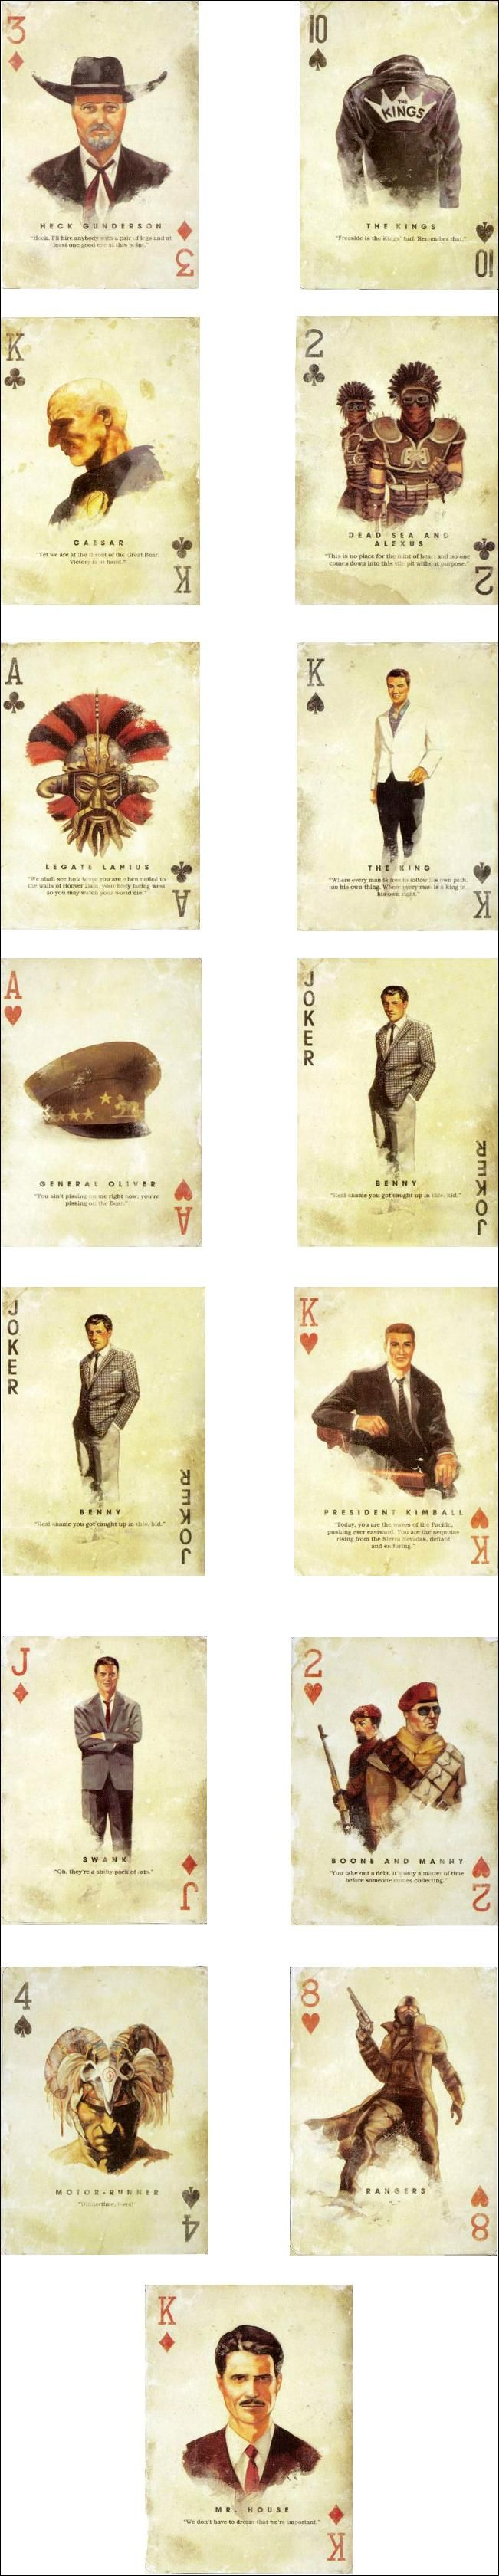 Cool playing cards for Fallout: New Vegas